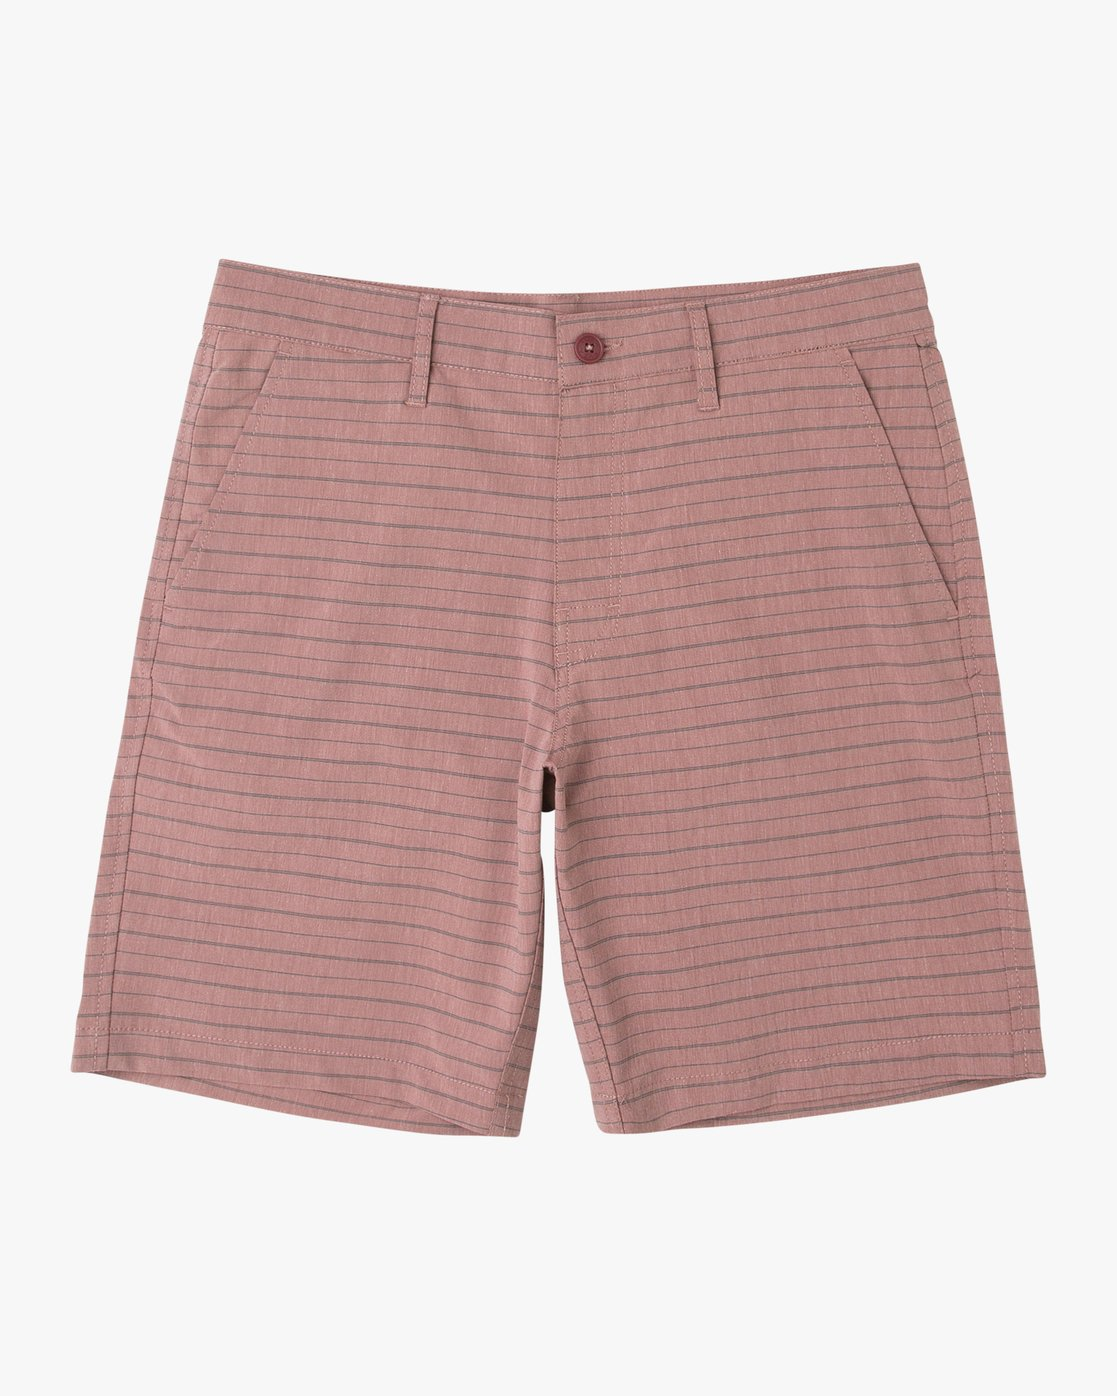 0 Balance Fairview Hybrid Short Purple M203URFH RVCA